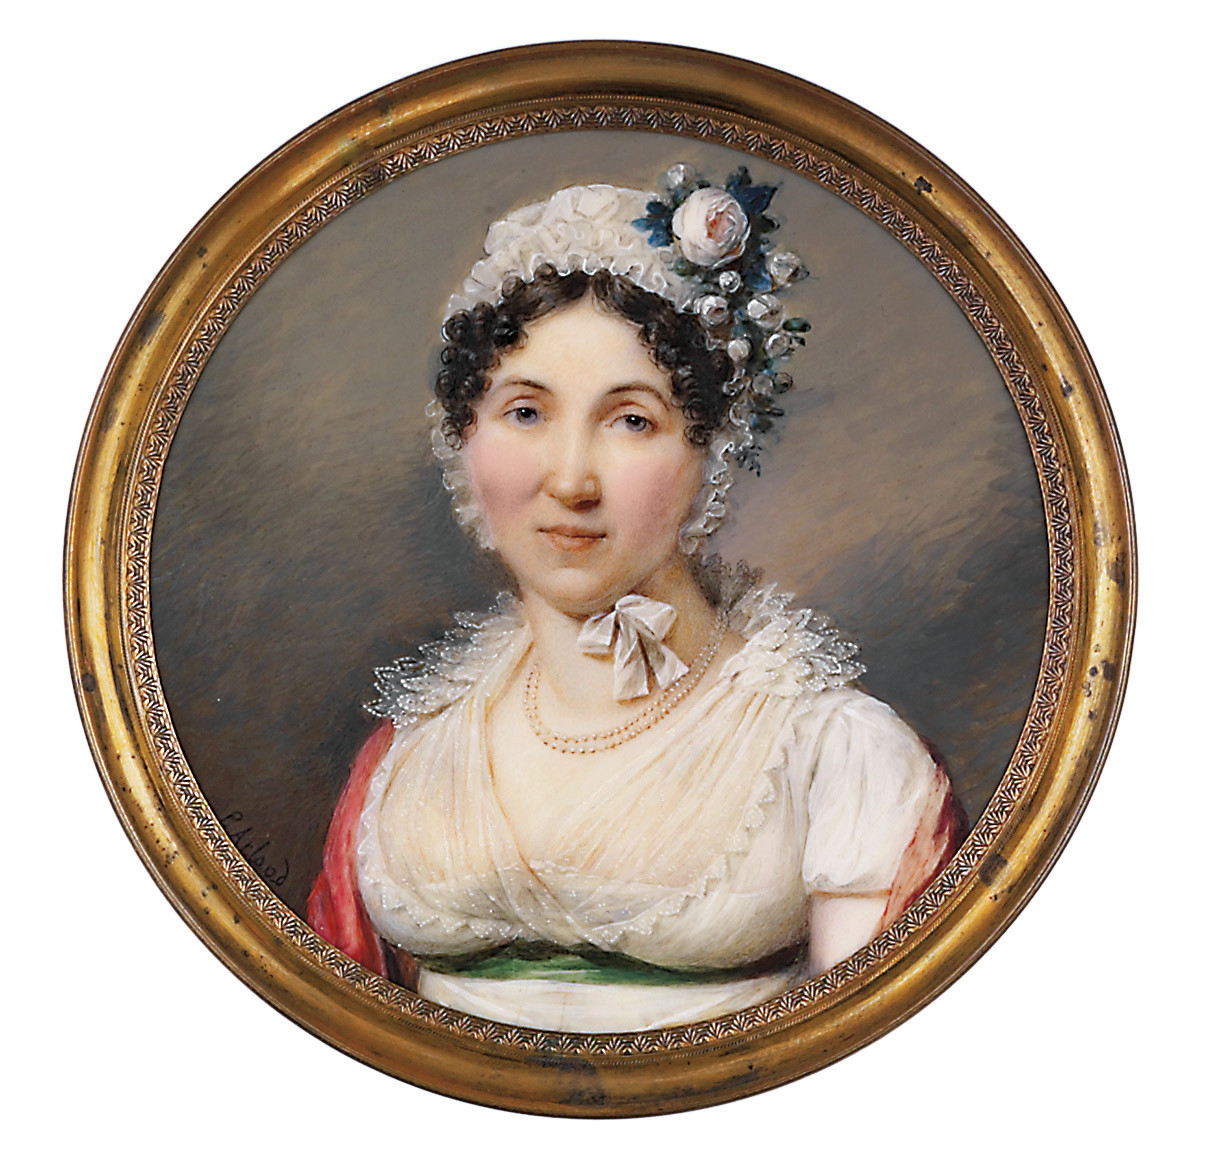 A lady, in white mull gown with embroidered gauze Van Dyck collar, green silk sash at waist, cerise Cashmere shawl over her shoulders, roses pinned to her white muslin cap, double-strand pearl necklace